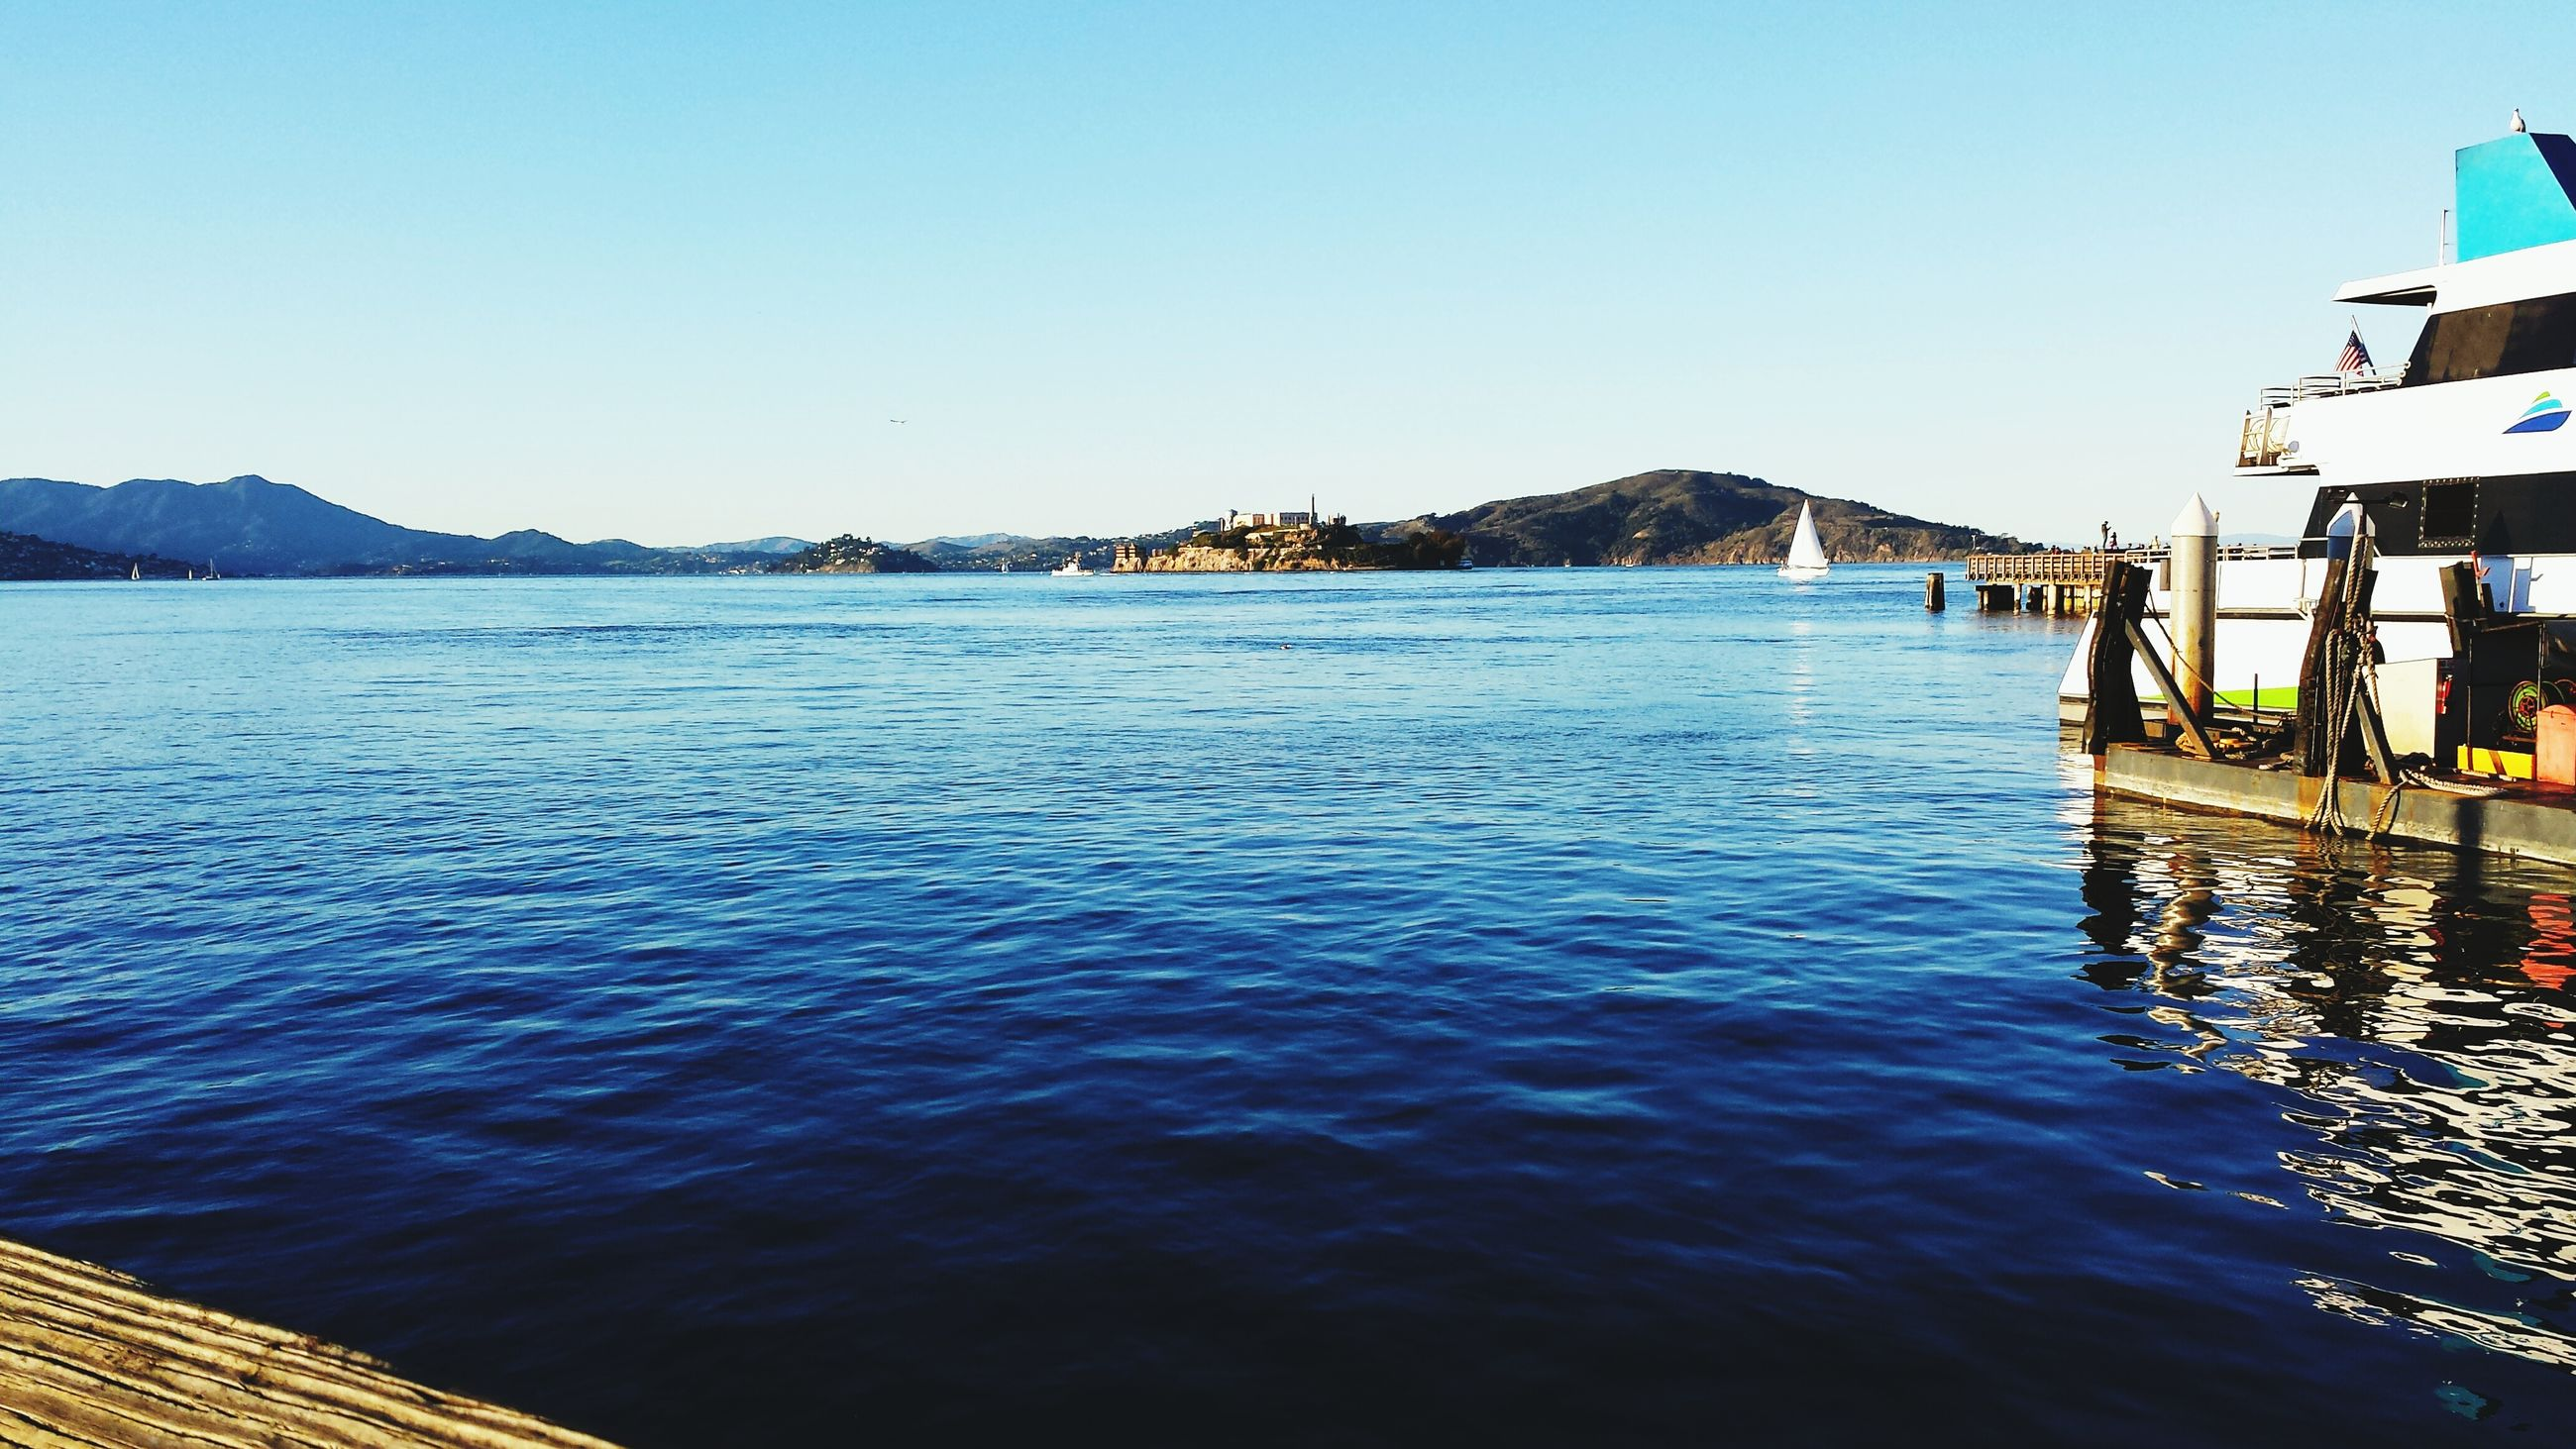 water, clear sky, mountain, blue, sea, copy space, built structure, scenics, tranquil scene, architecture, tranquility, waterfront, building exterior, beauty in nature, rippled, mountain range, nature, lake, day, idyllic